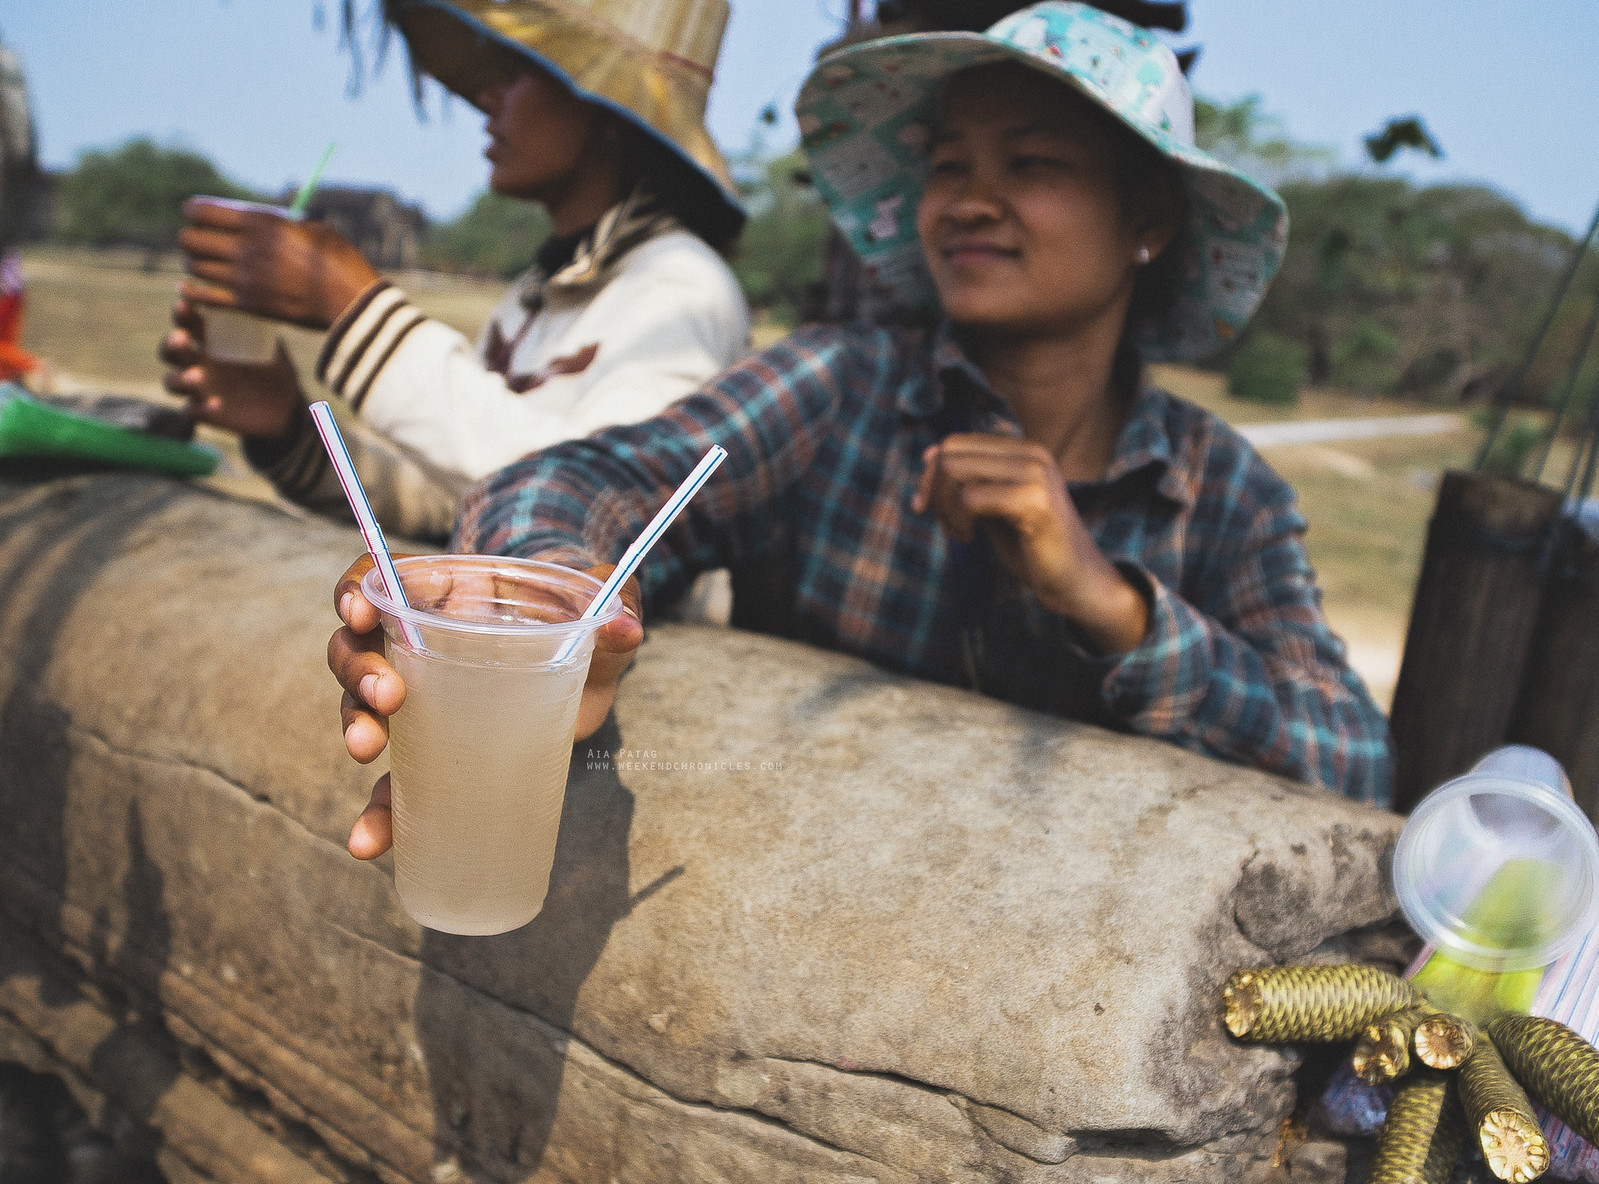 Palm juice handed over by this sweet girl